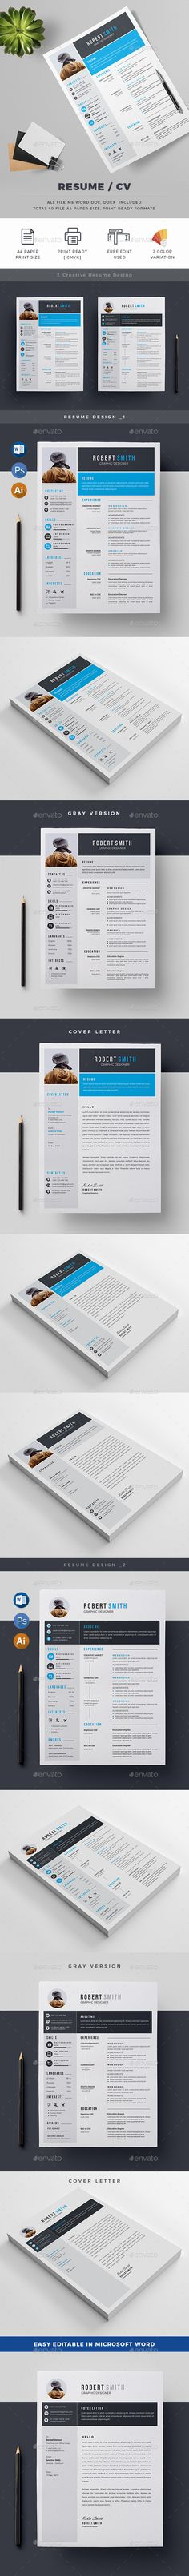 CV Template with super clean and modern look. Files Included: 8 PSD – Adobe Photoshop Files, 8 Ai – Adobe Illustrator Files, 16 Ms word DOC and DOCX Files, plus a User guide & Help file College Resume Template, Best Resume Template, Resume Design Template, Creative Resume Templates, Cv Template, Design Resume, Creative Cv, Cv Photoshop, Simple Resume